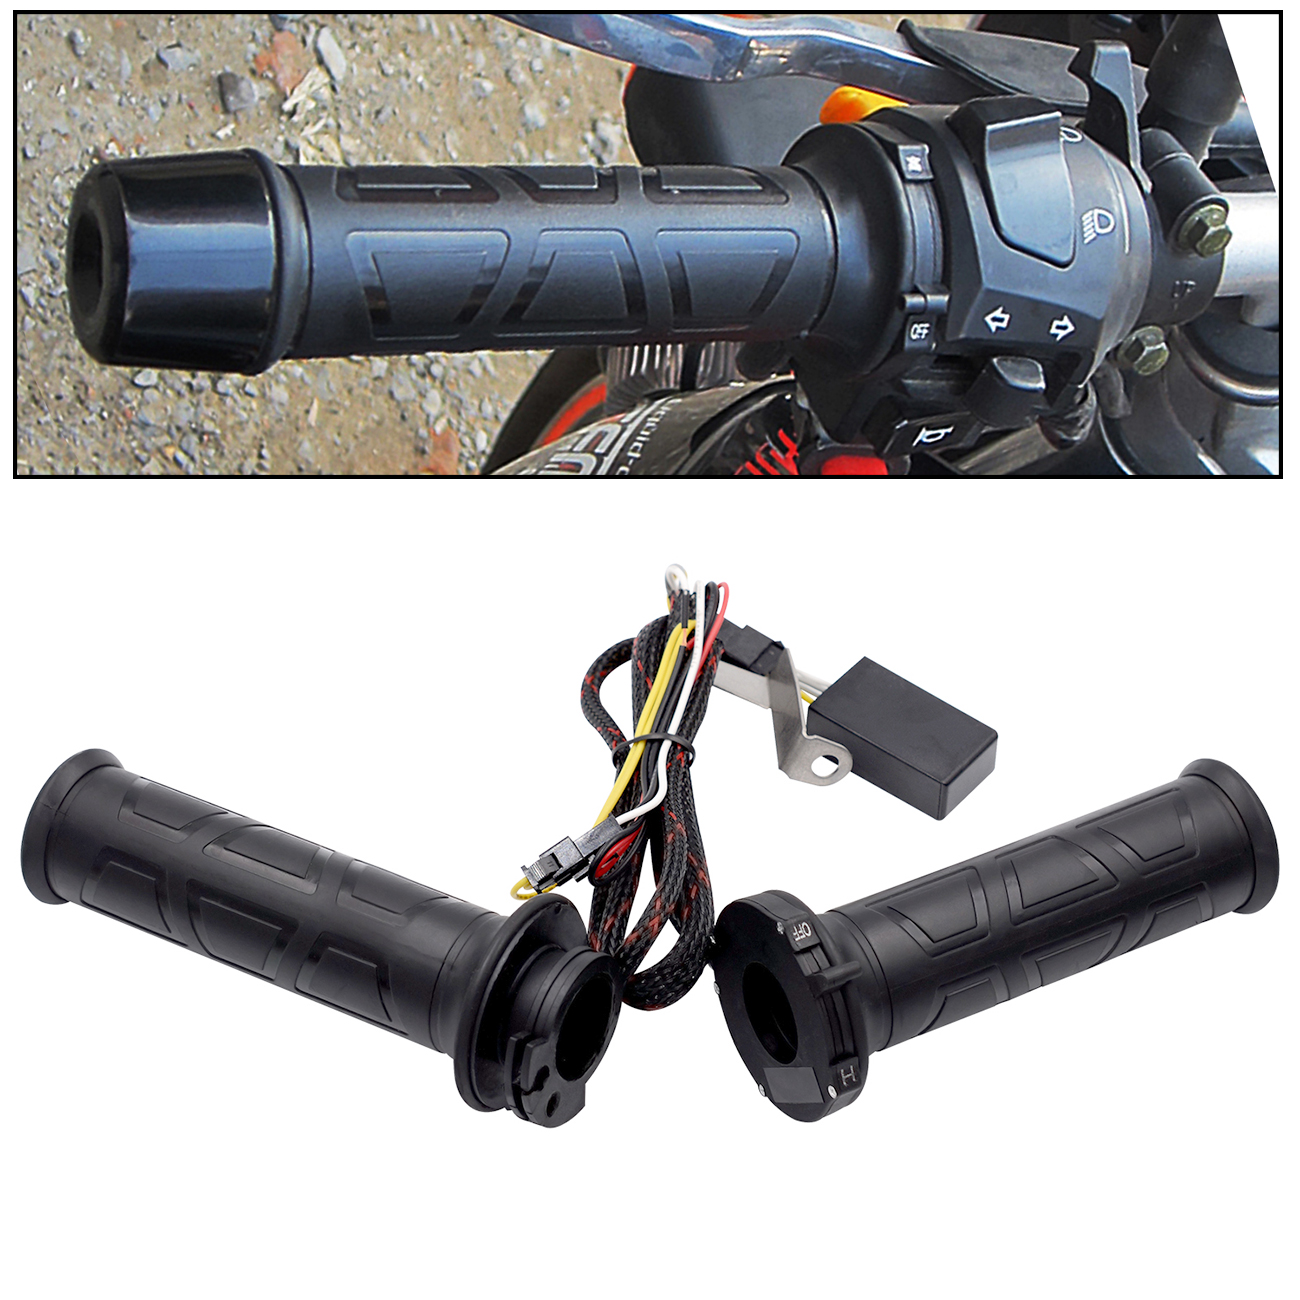 1 Pair 12V 12W-24W 22MM Motorcycle Handlebar Adjustable temperature Universal Electric Heated Handle with Heat-Shrinkable T Bush